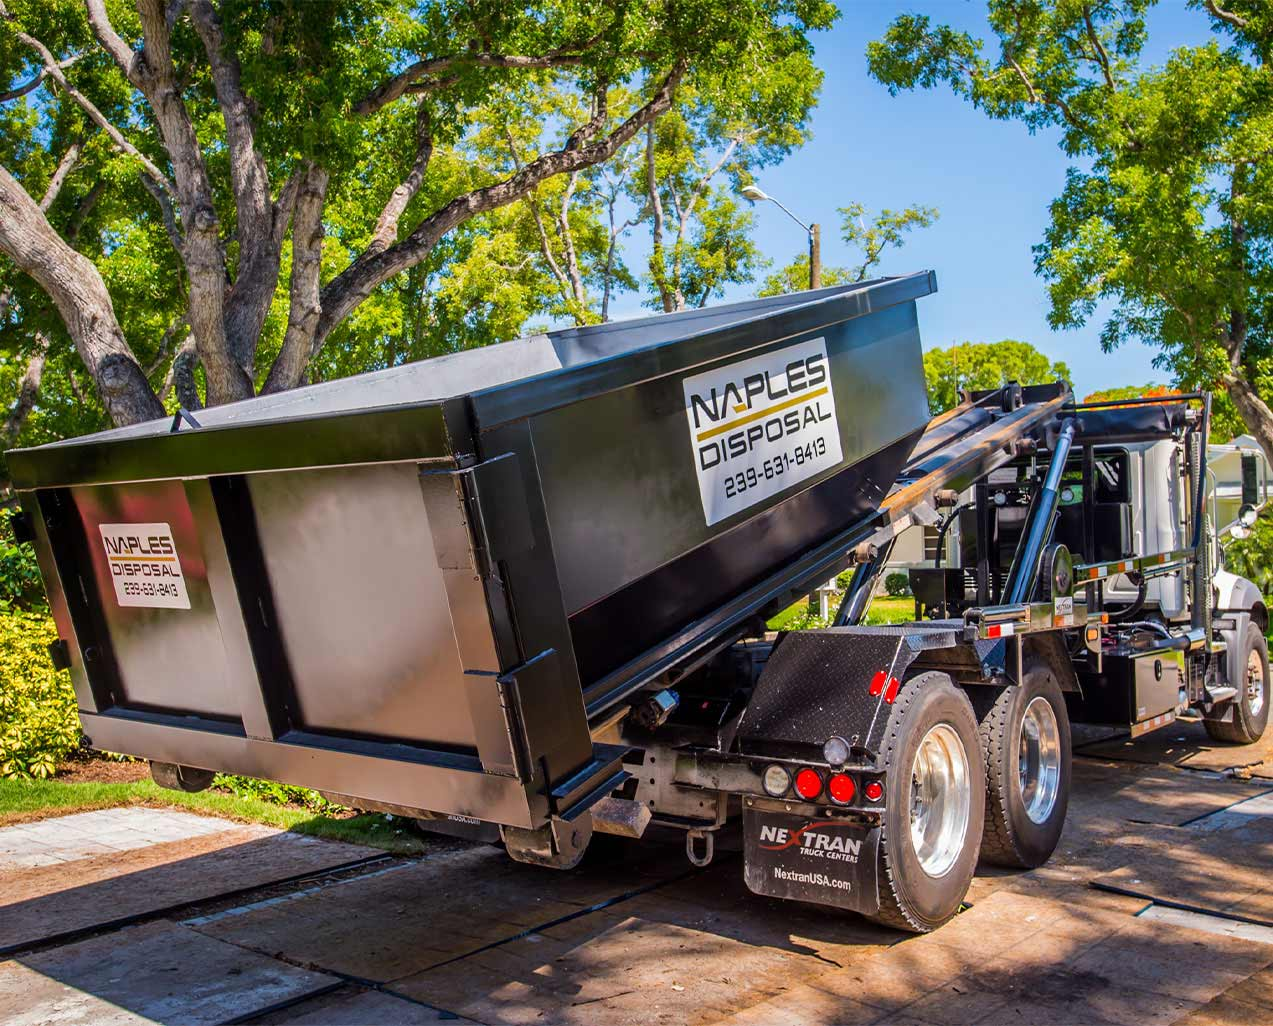 Roll Off Dumpster Rentals | Naples Excavating - Southwest Florida Dumpster Rentals